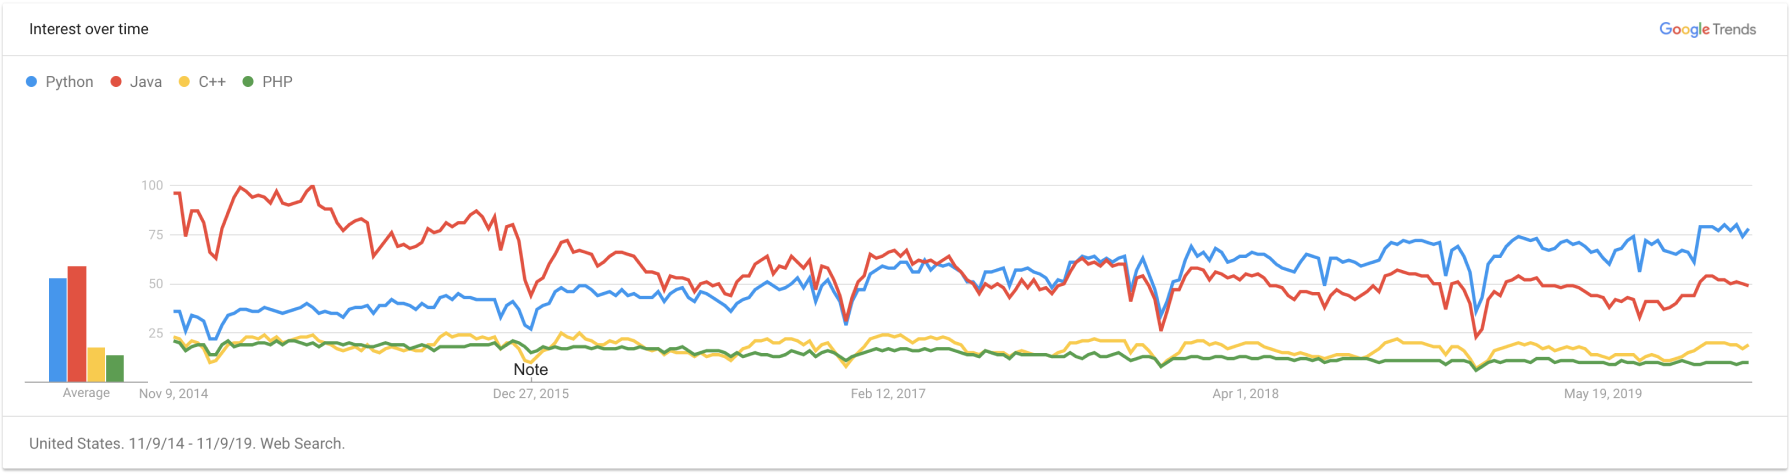 Google Trends chart for Python